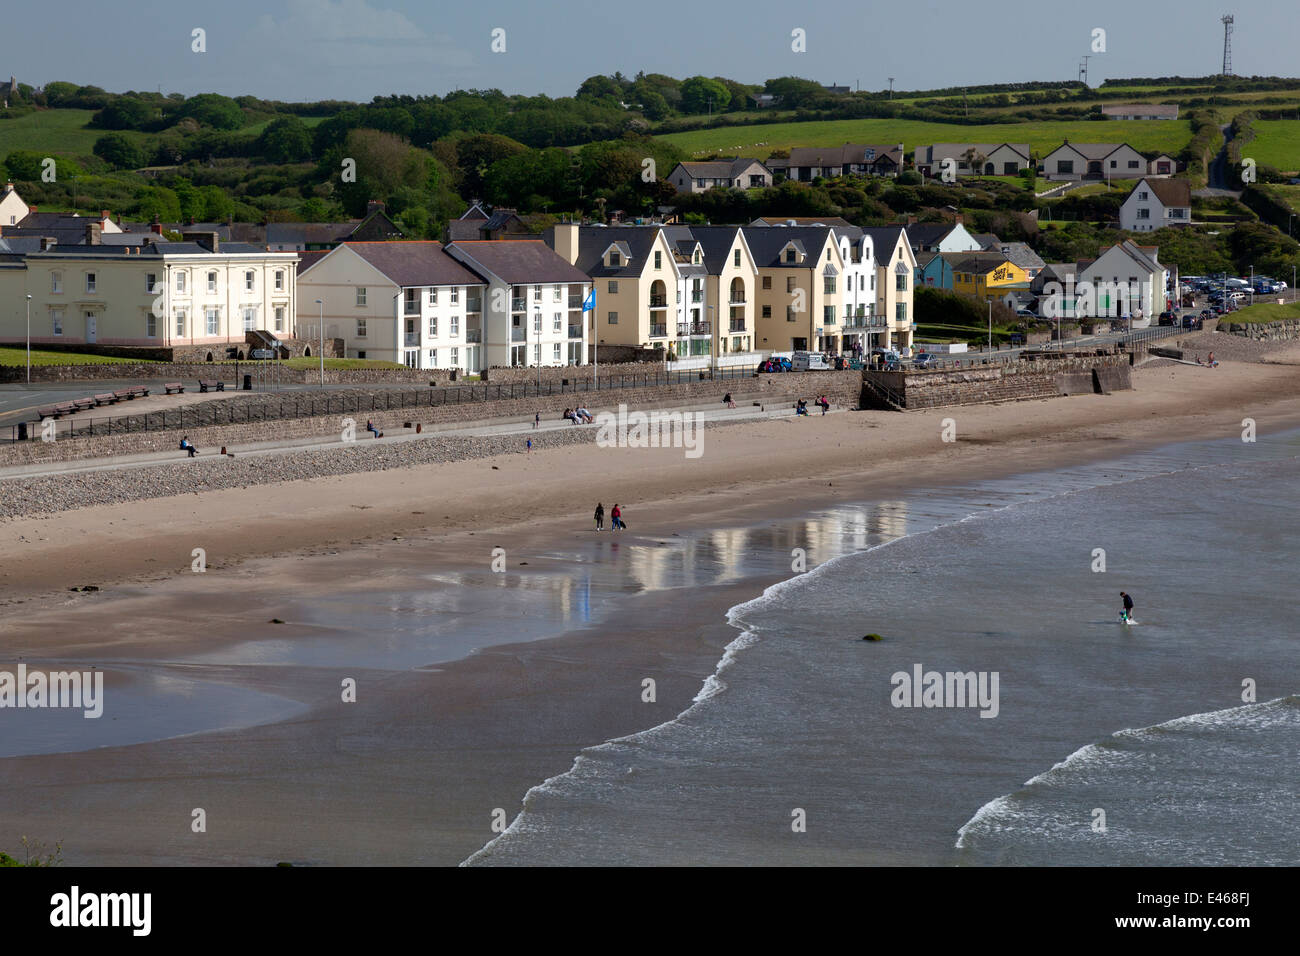 View of the sea front, Broad Haven, Pembrokeshire - Stock Image